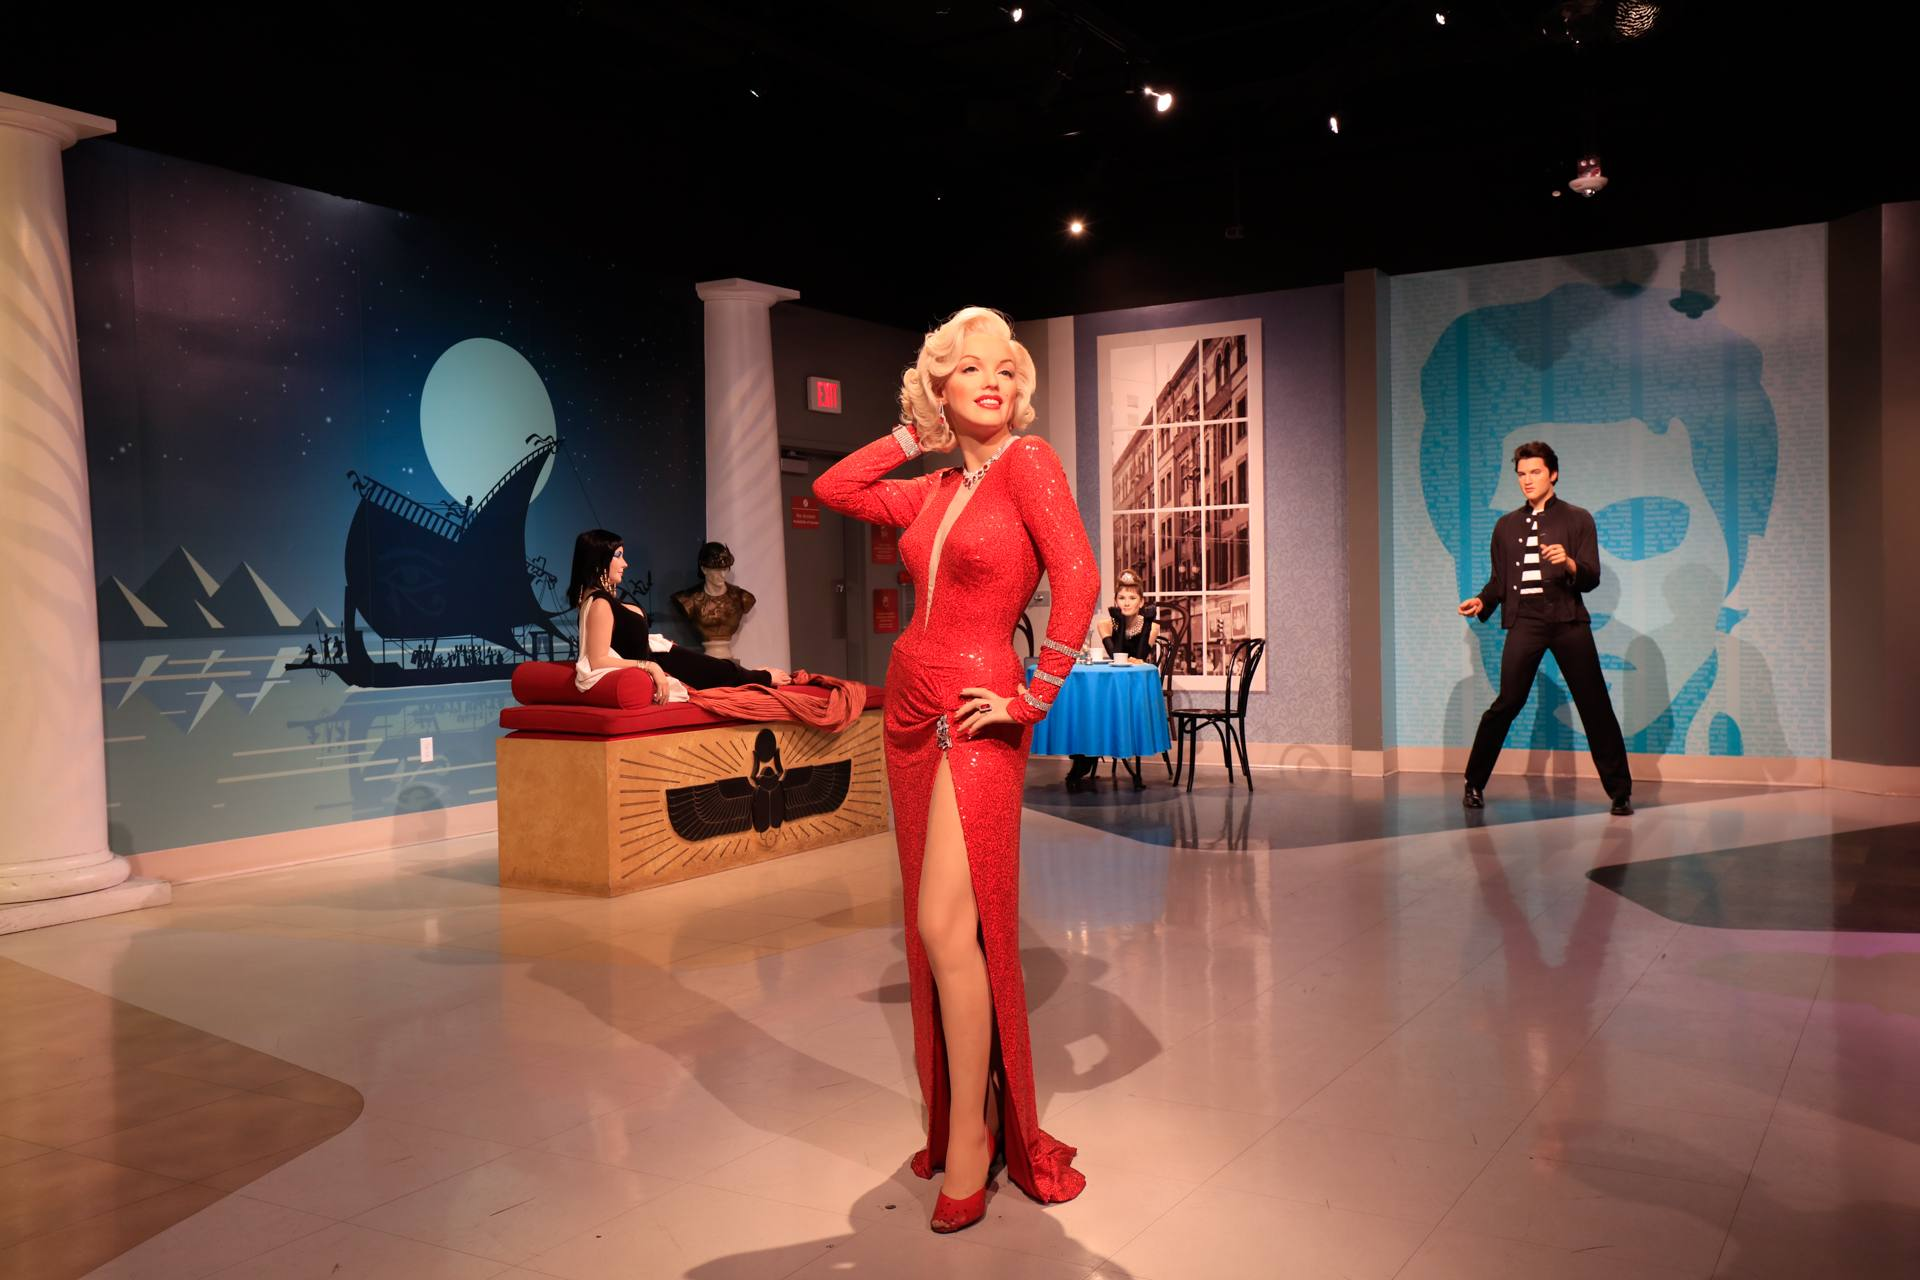 Marilyn Monroe at Madame Tussauds Hollywood